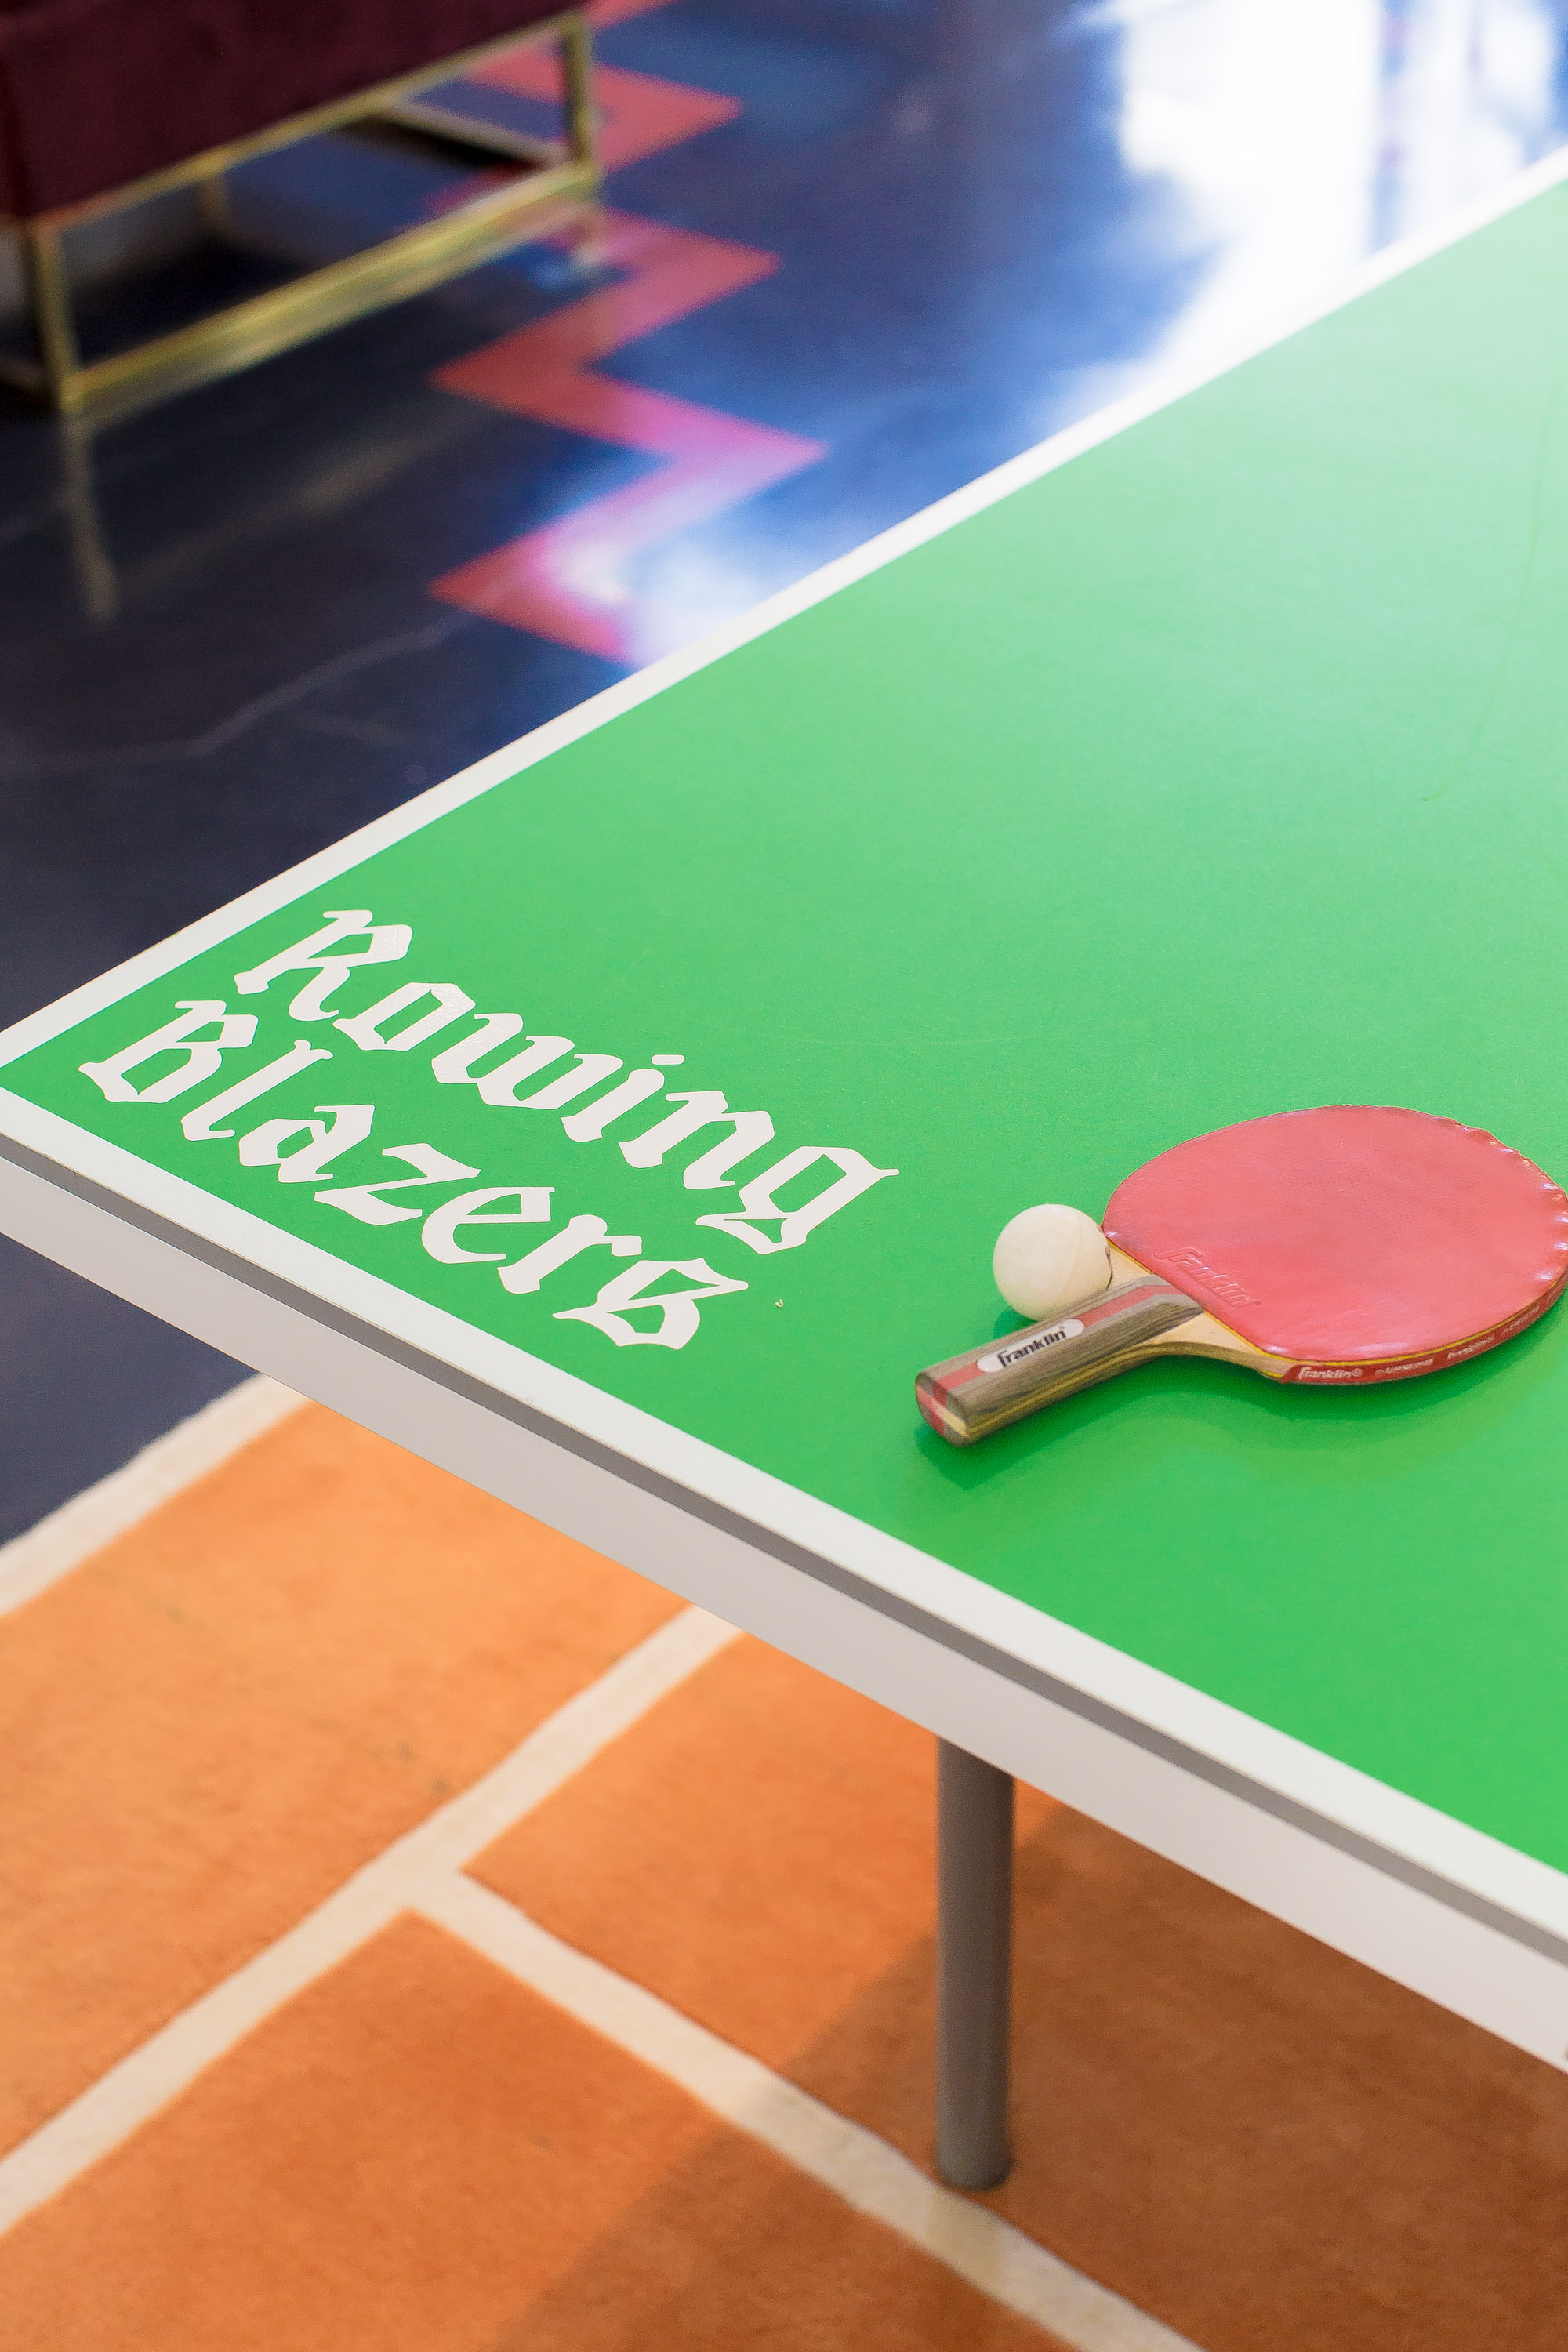 Club life includes table tennis at Rowing Blazer.